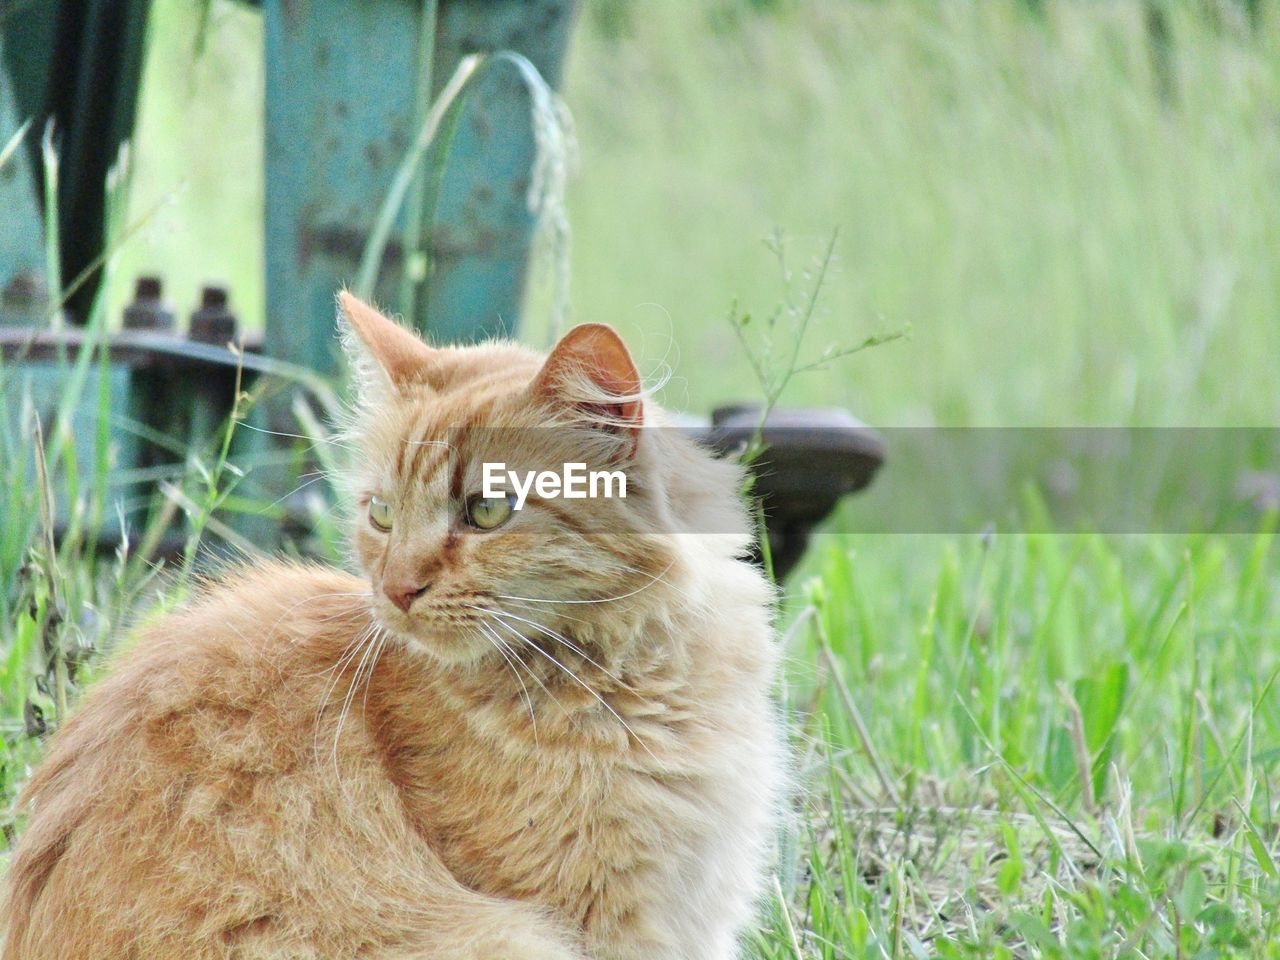 cat, feline, domestic cat, domestic, domestic animals, pets, animal themes, mammal, animal, one animal, vertebrate, grass, focus on foreground, plant, field, nature, whisker, day, no people, looking, outdoors, animal head, ginger cat